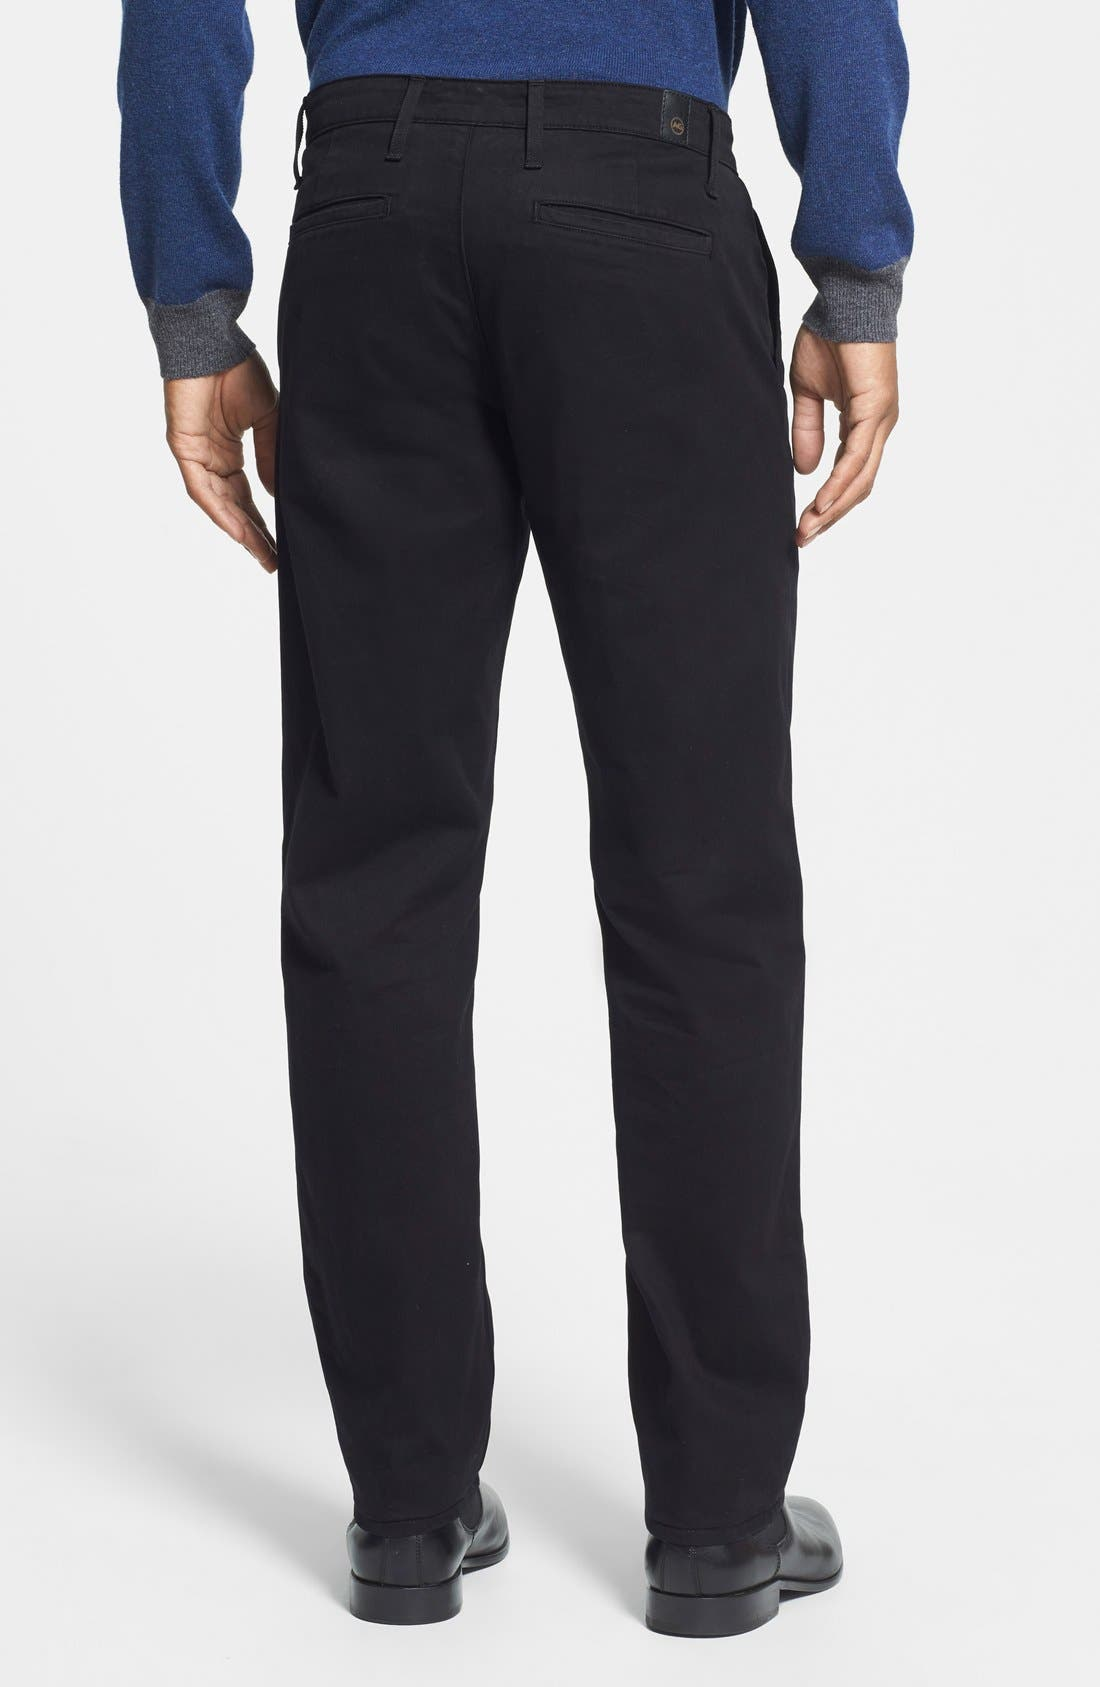 'The Lux' Tailored Straight Leg Chinos,                             Alternate thumbnail 2, color,                             Black